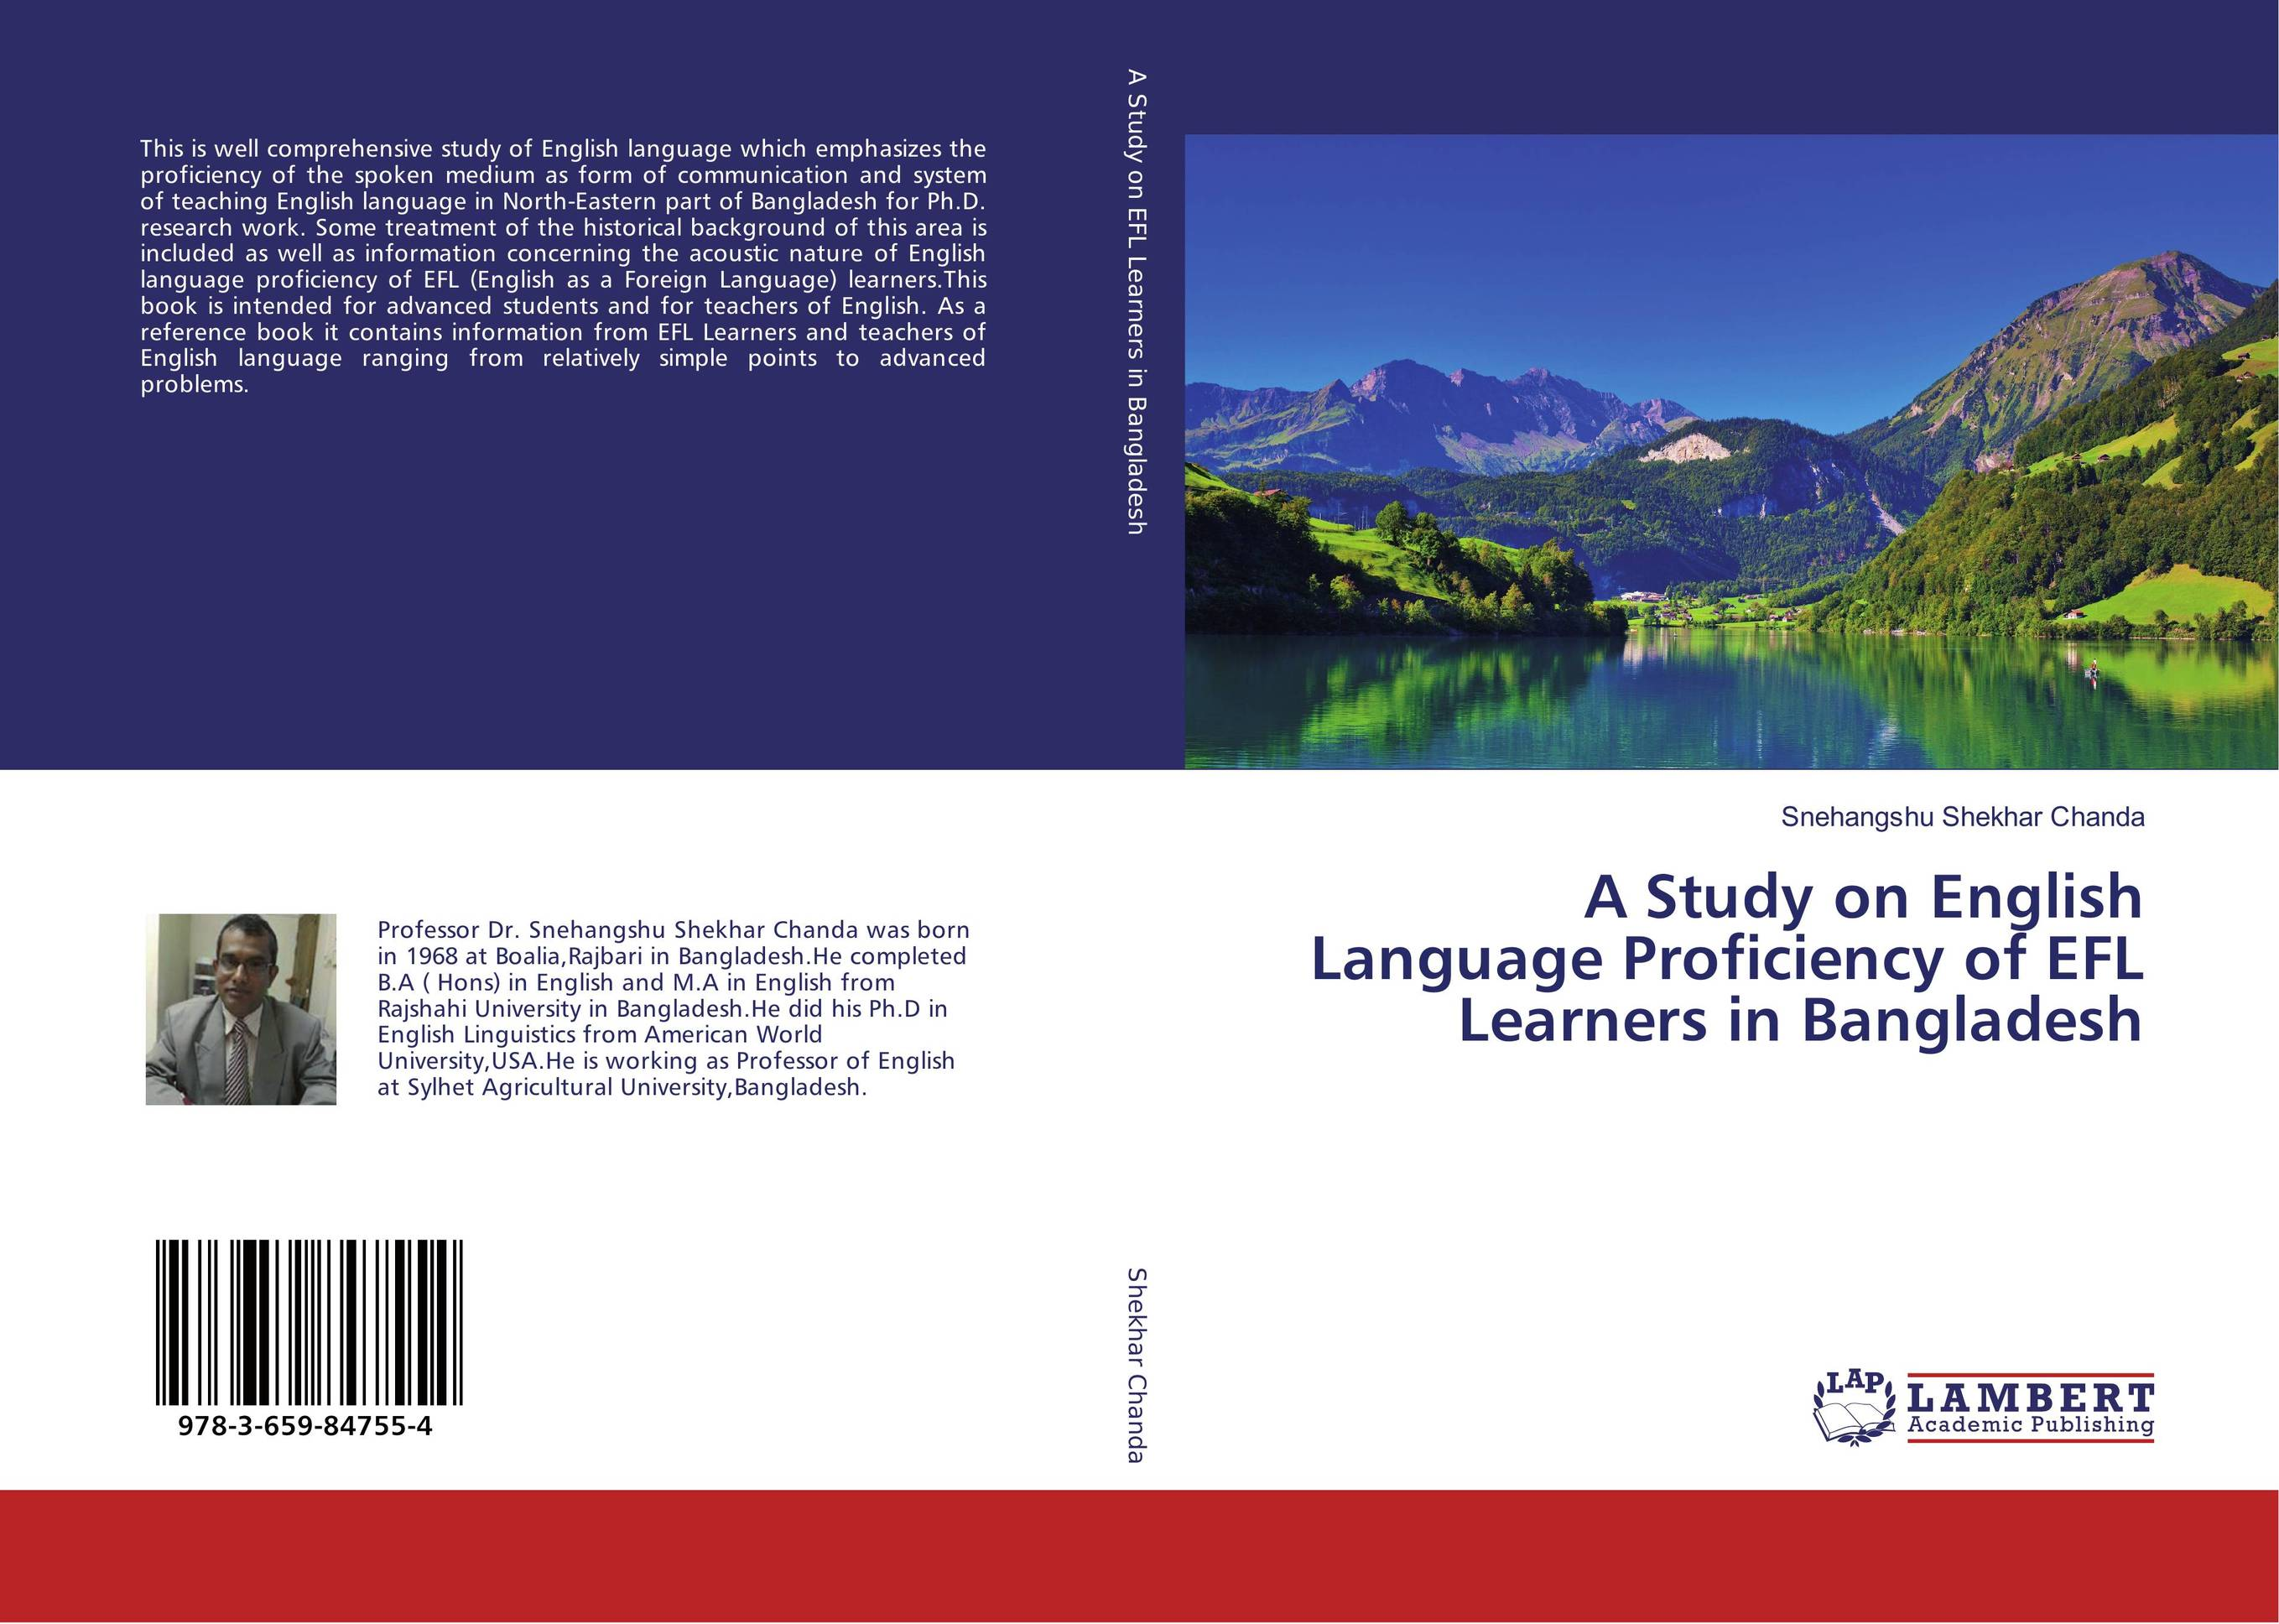 A Study on English Language Proficiency of EFL Learners in Bangladesh early signs of language shifting